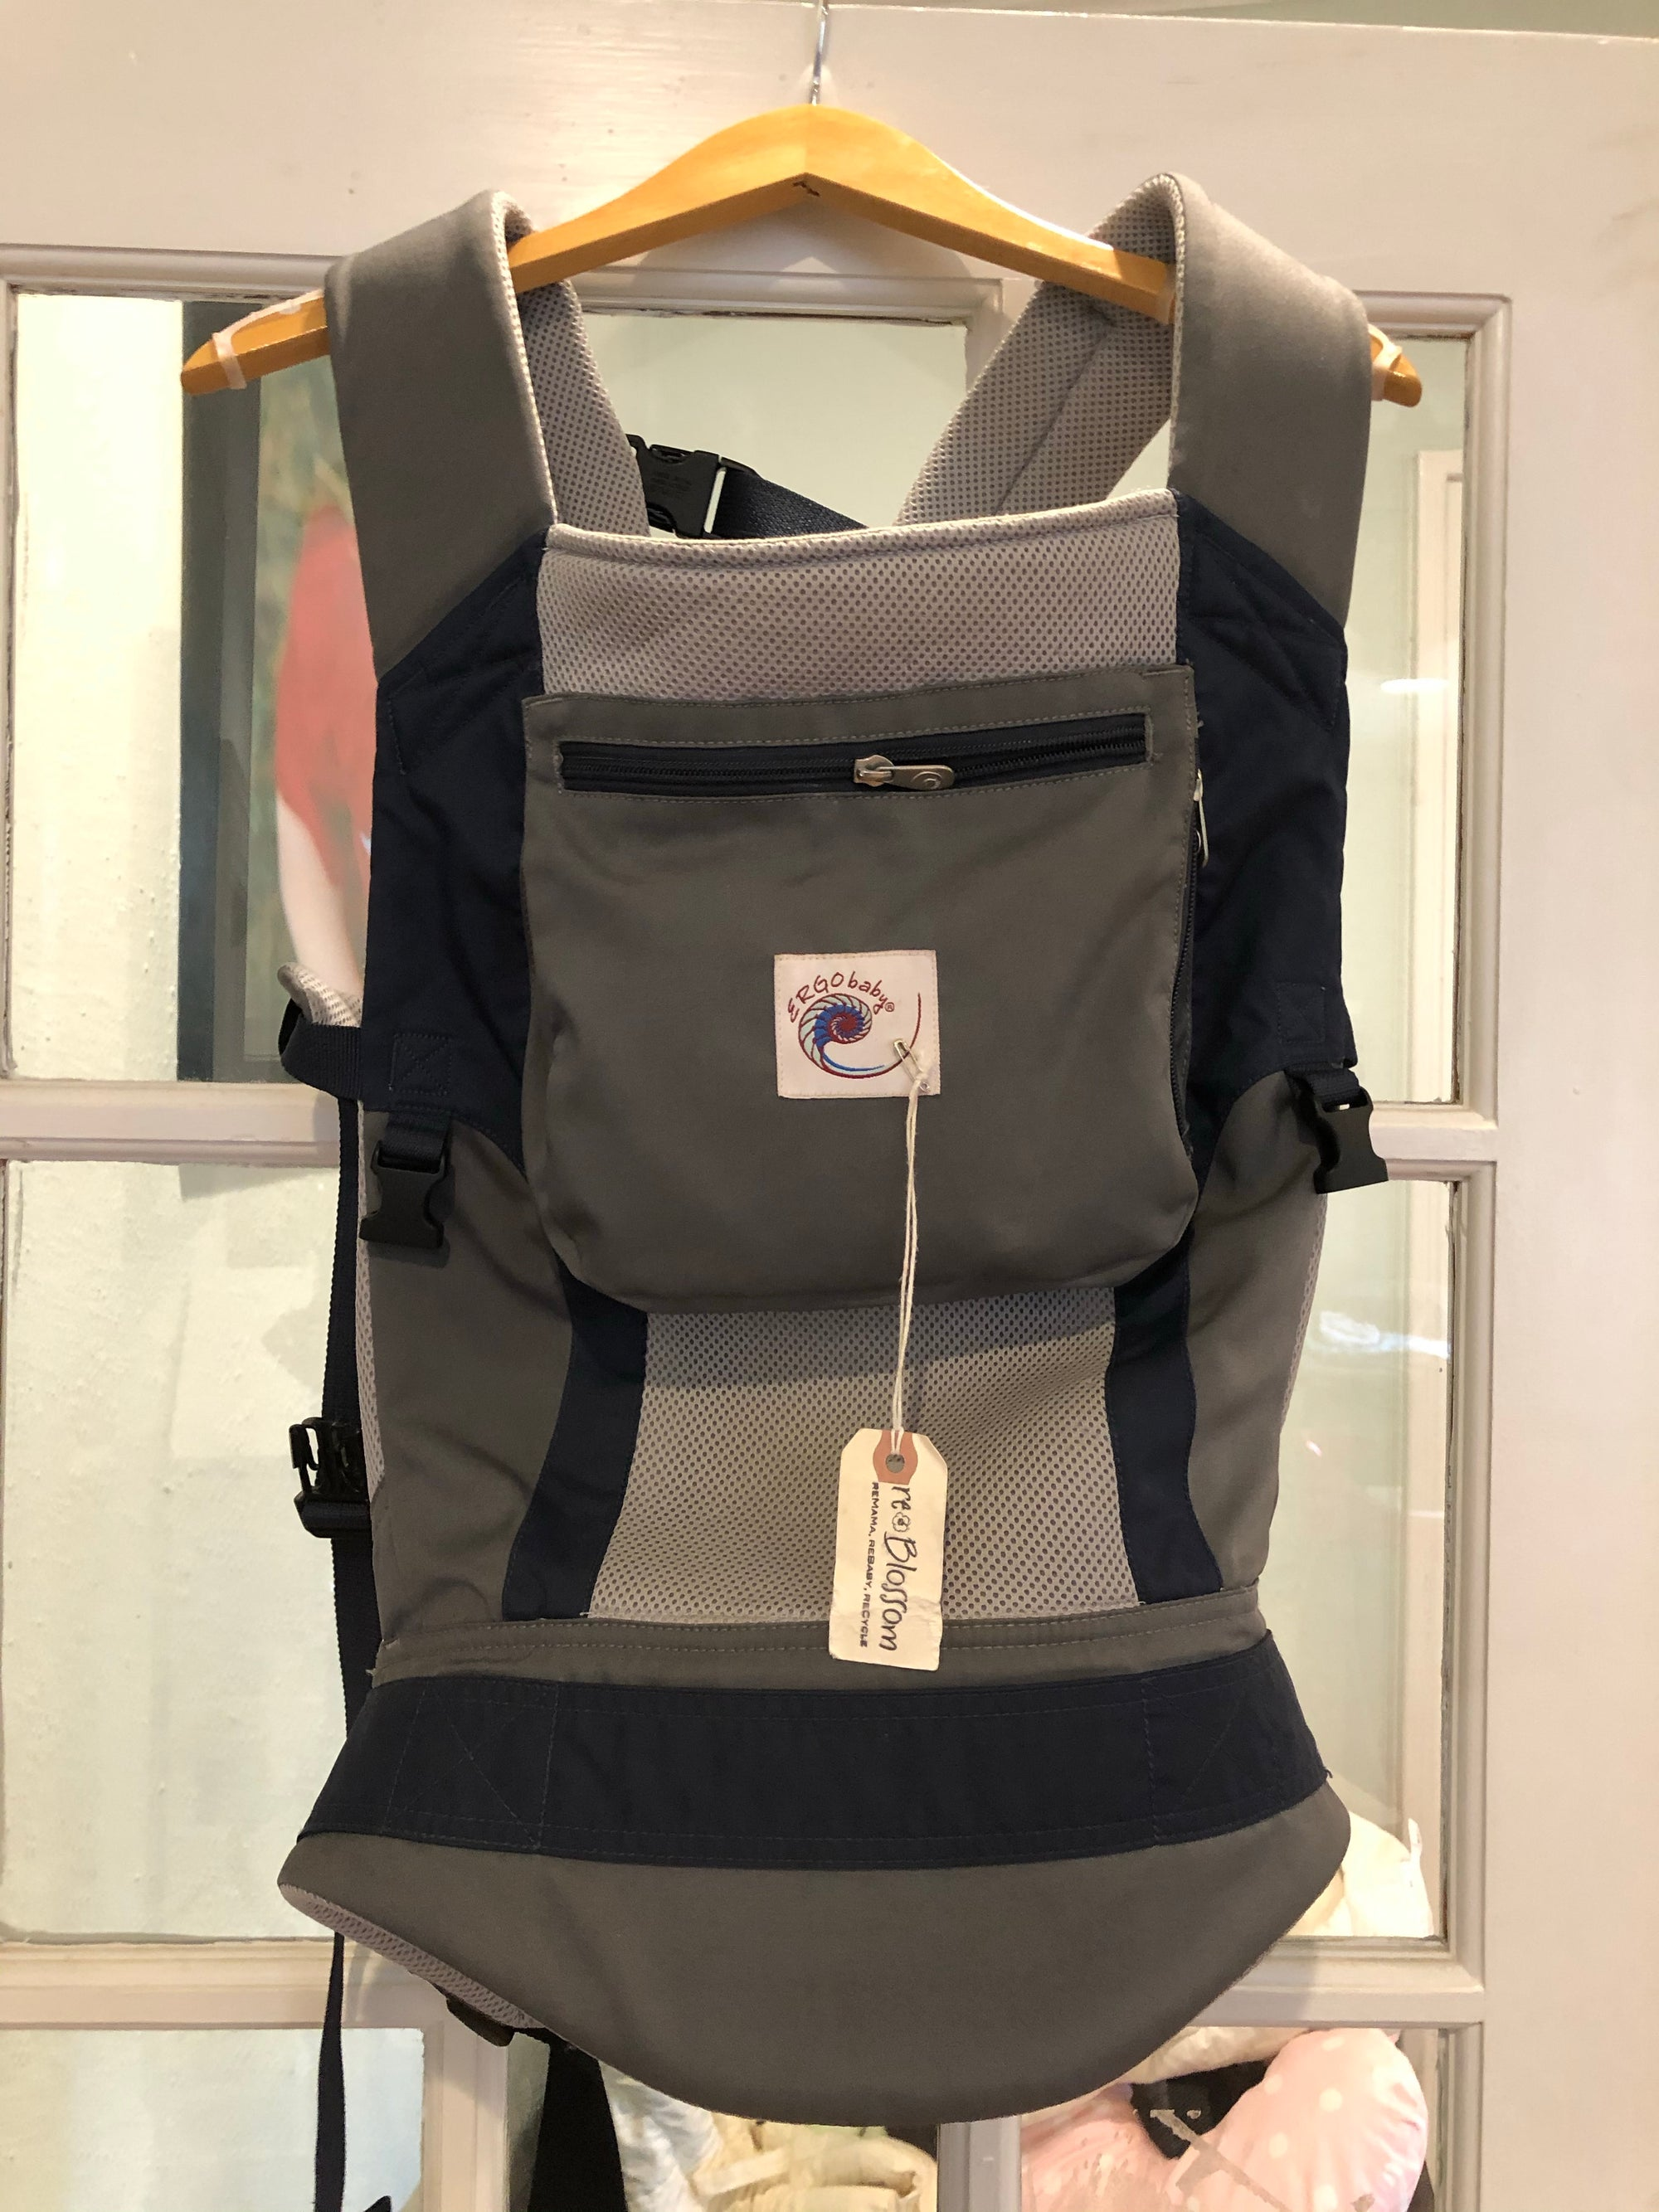 Resale Ergobaby Performance Baby Carrier - Navy Grey